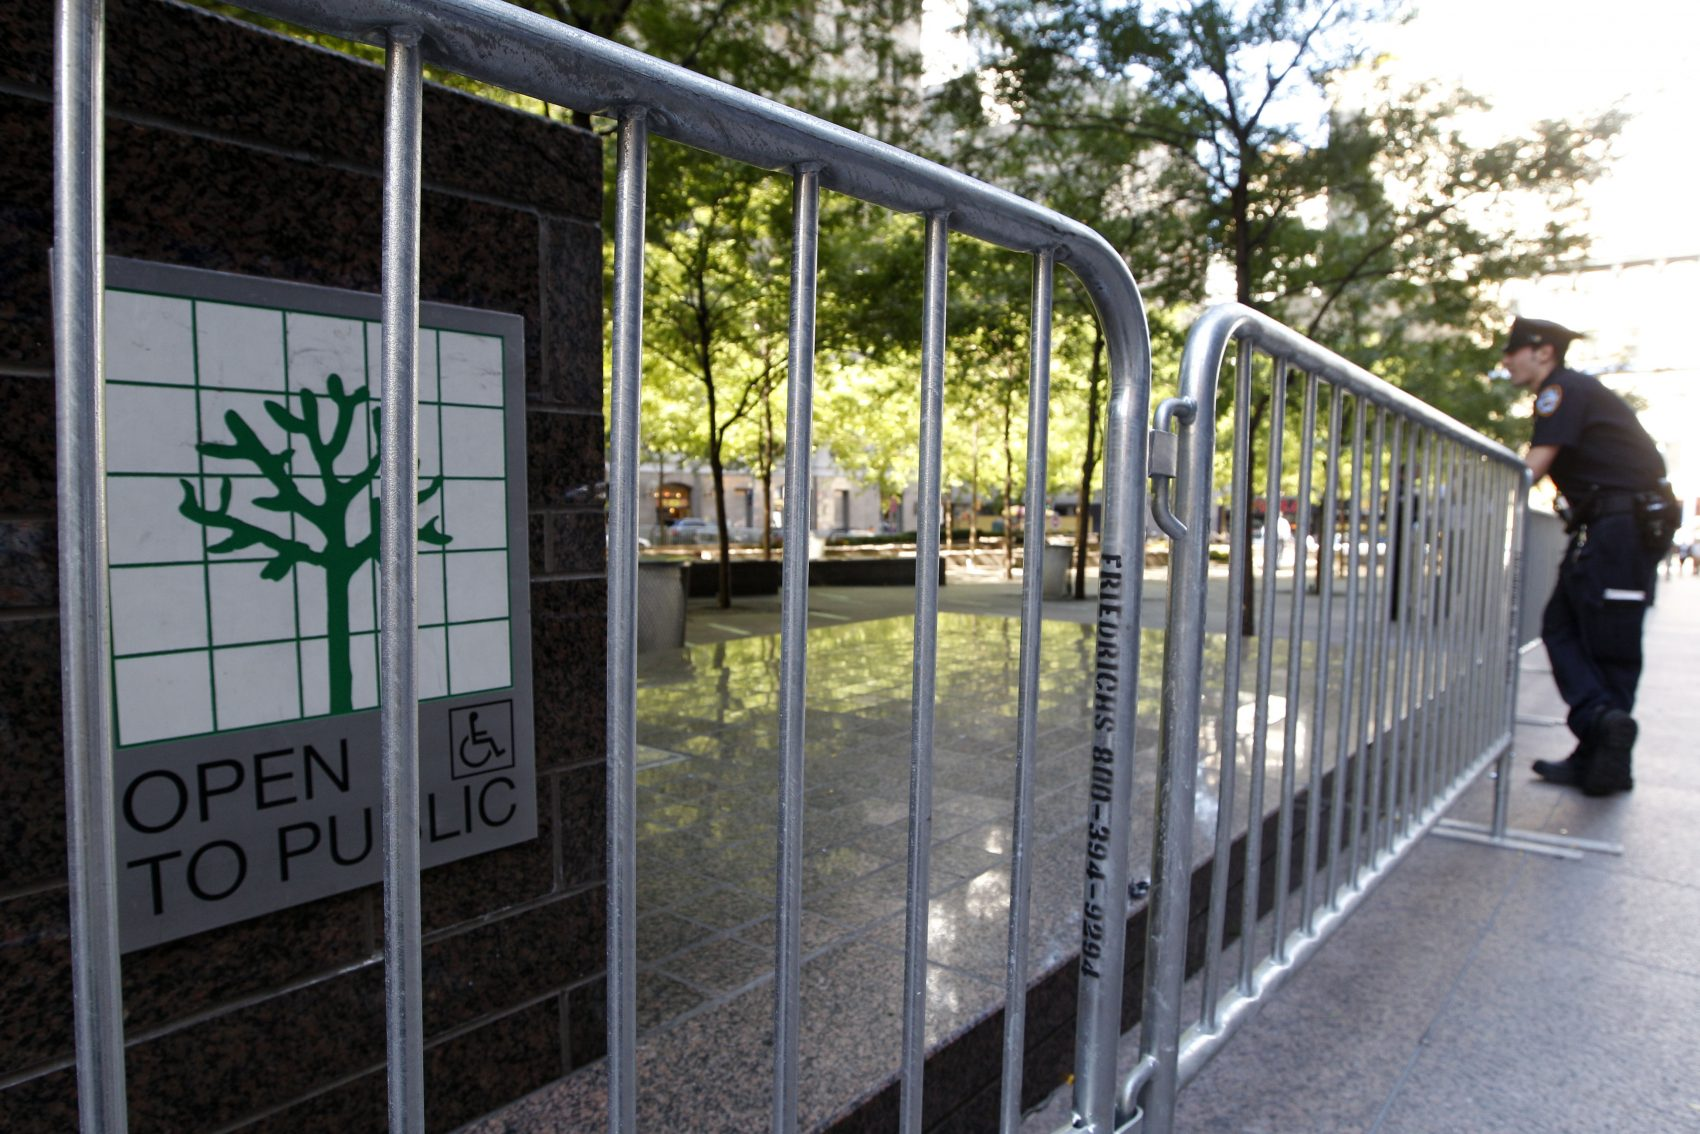 A police officer stands guard outside metal barricades surrounding Zuccotti Park, Saturday, Sept. 15, 2012, in New York, during Occupy Wall Street protests. The park is a privately owned public space. (Mary Altaffer/AP)